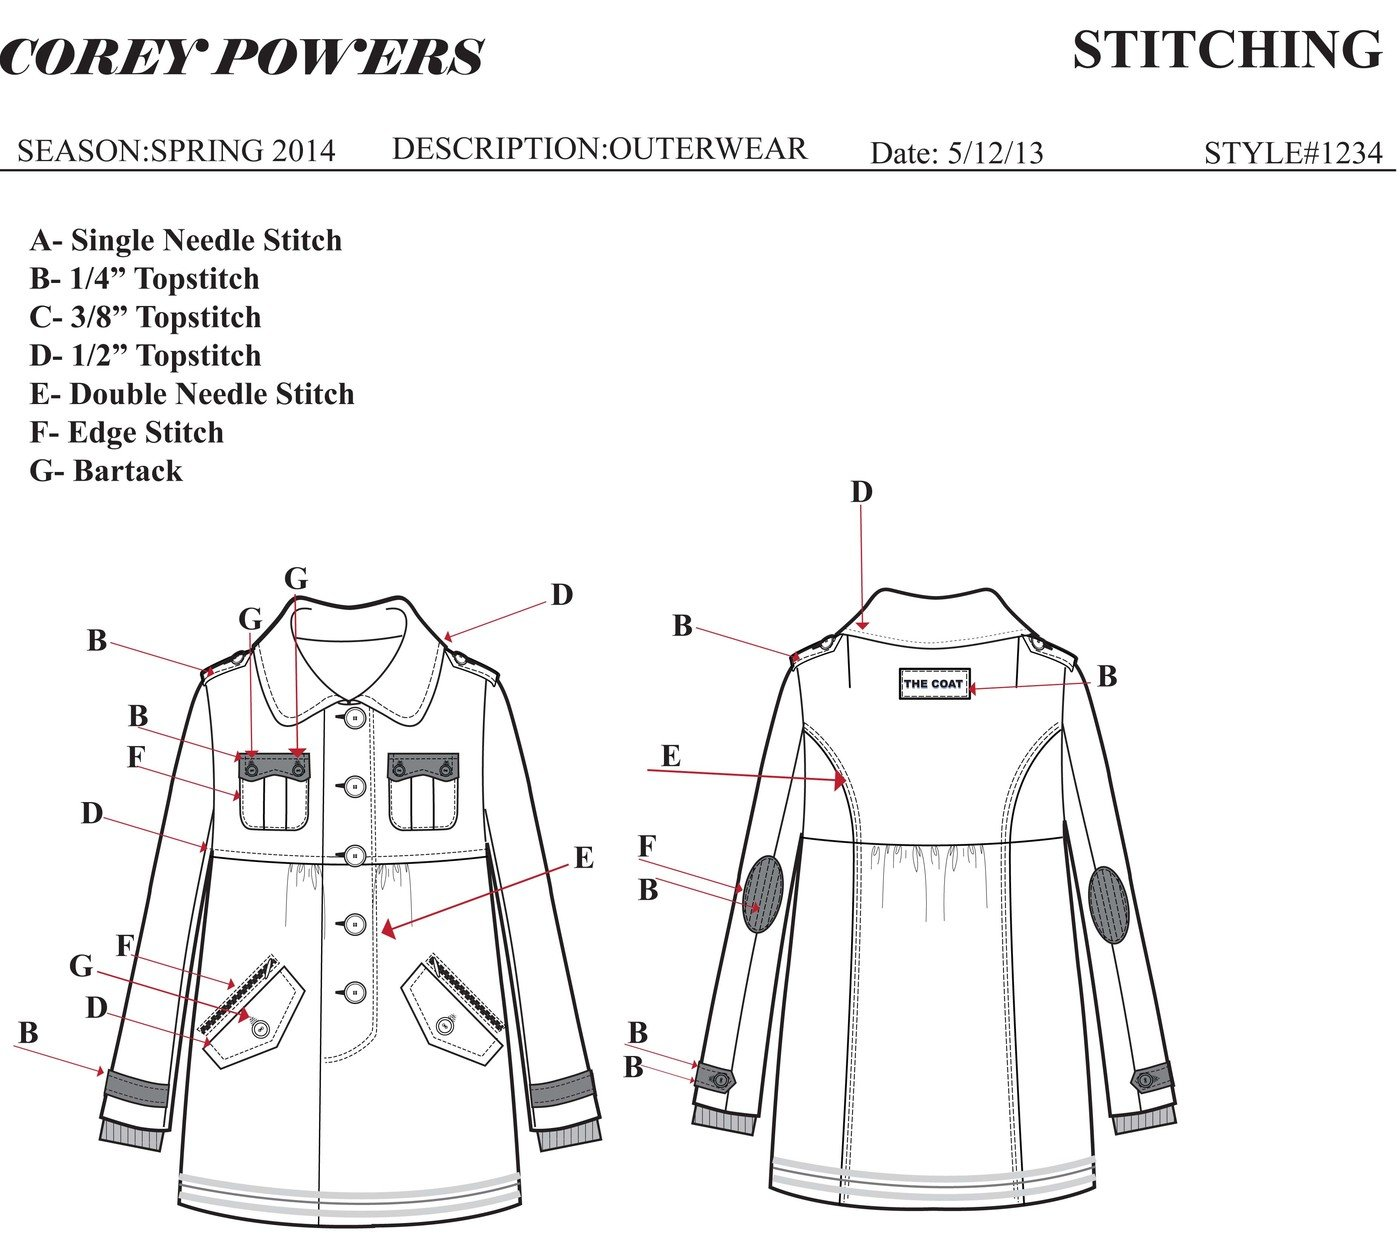 Sample Tech Pack and Spec Sheet by Corey Powers at